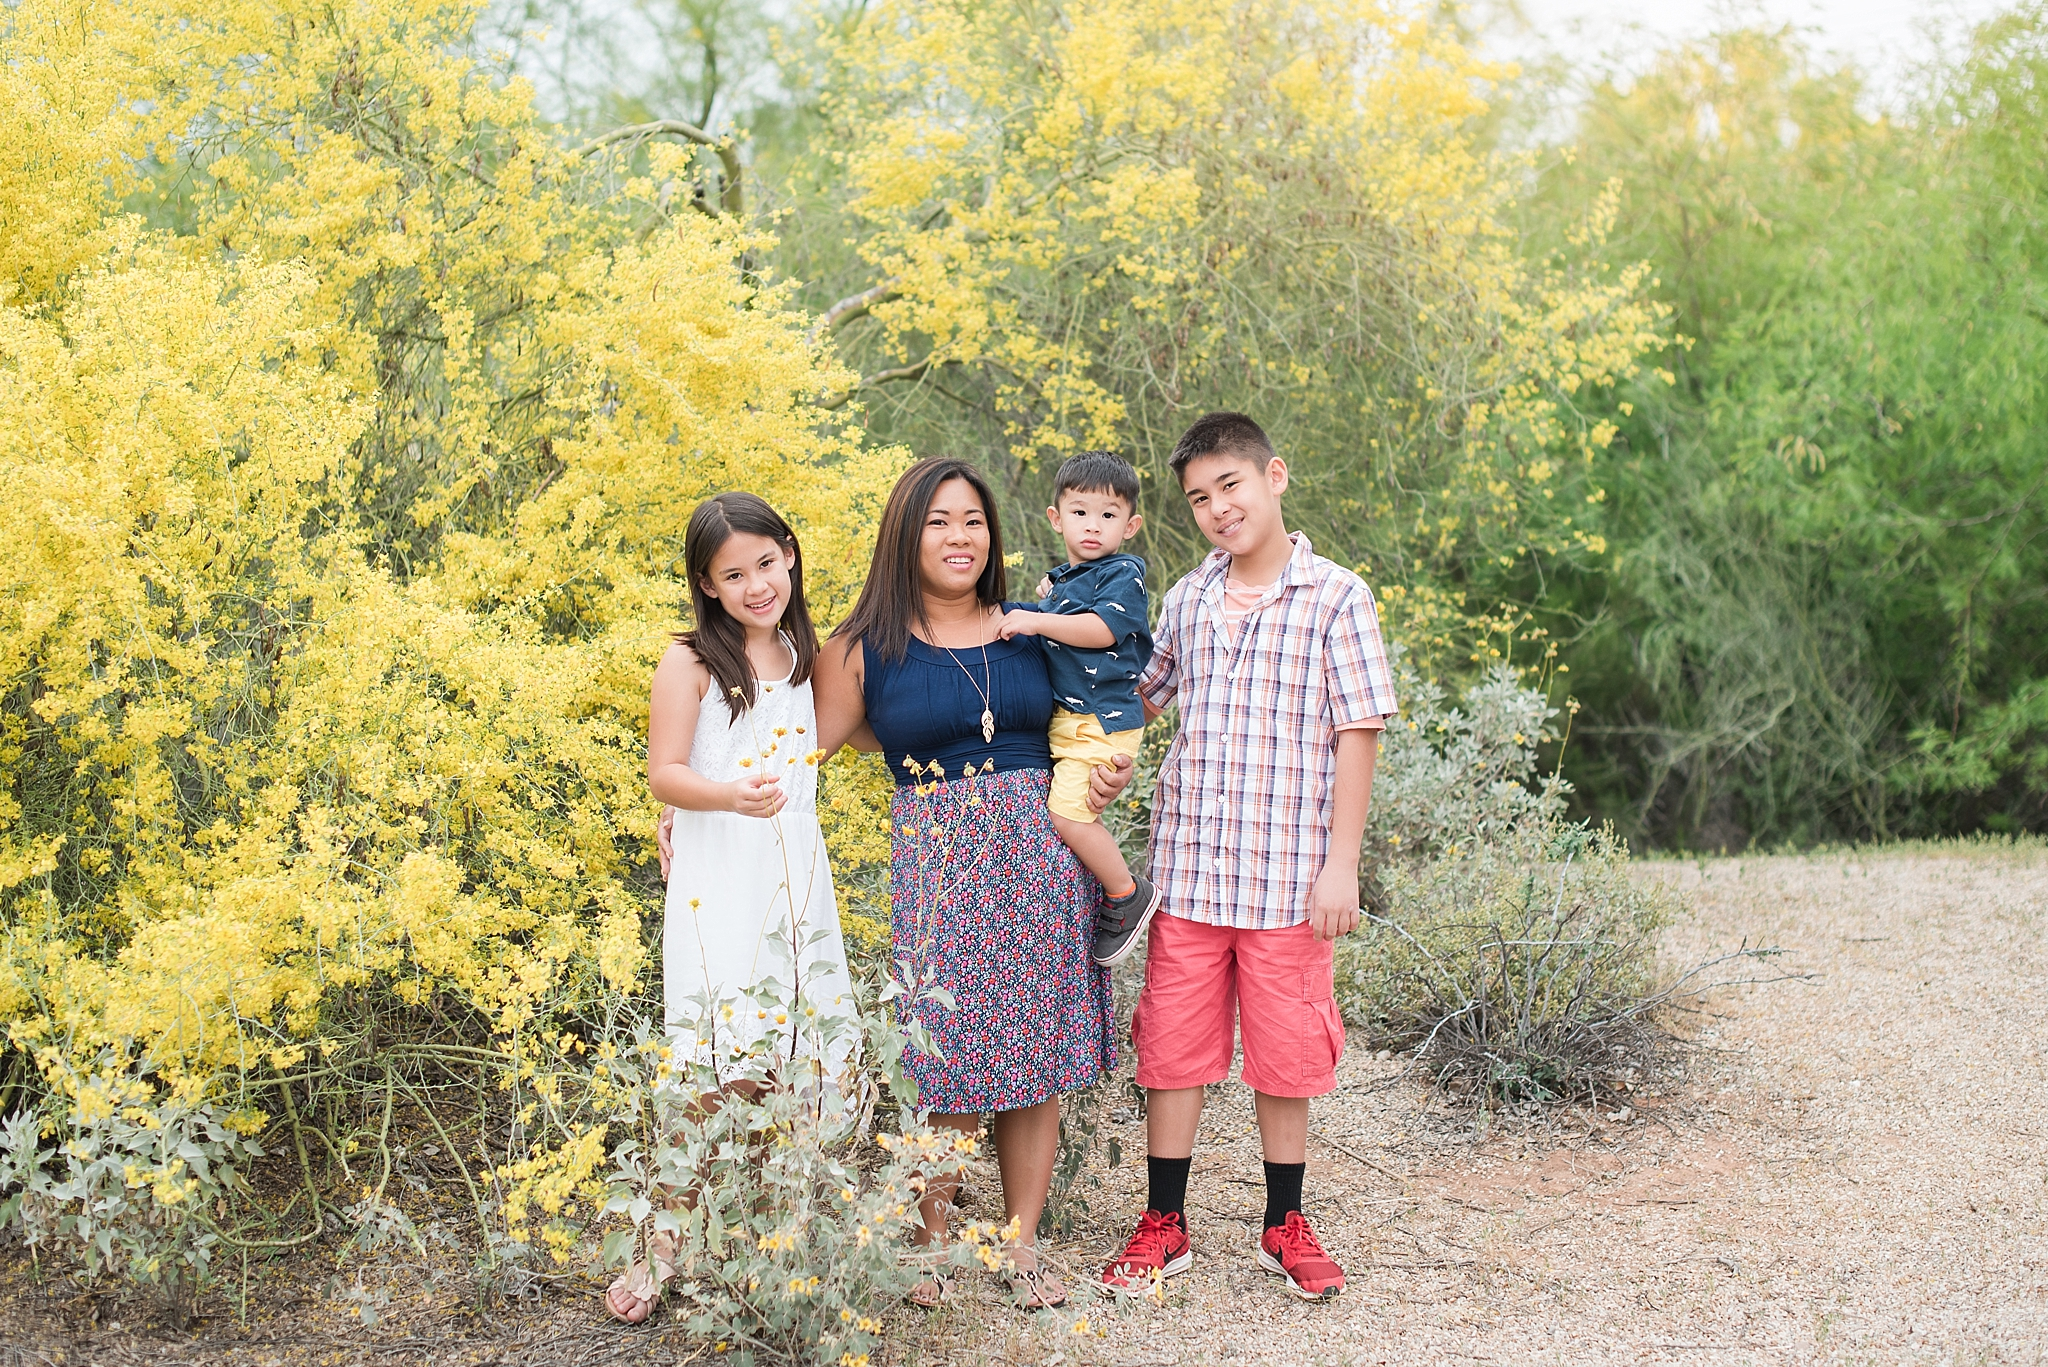 Family photography session with Jhenneil Cruz and her kids, Greyson, Kaelin, and Mithchell. Photos taken at Gilbert Riparian Preserve by Jade Min Photography.